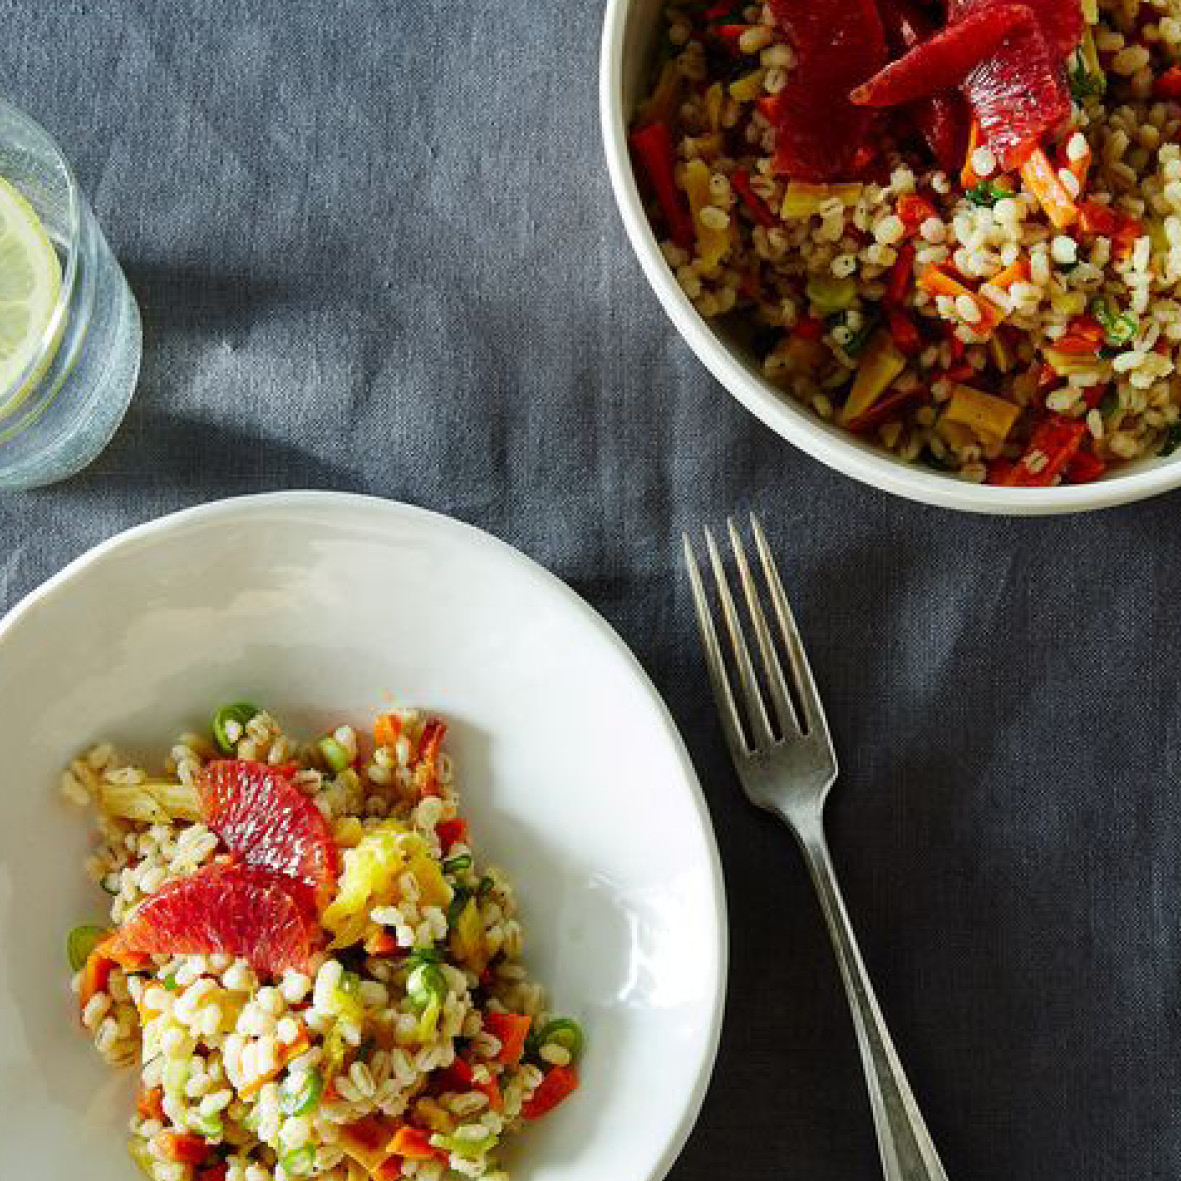 blood_orange_roasted_root_vegetables_and_barley_salad.jpg